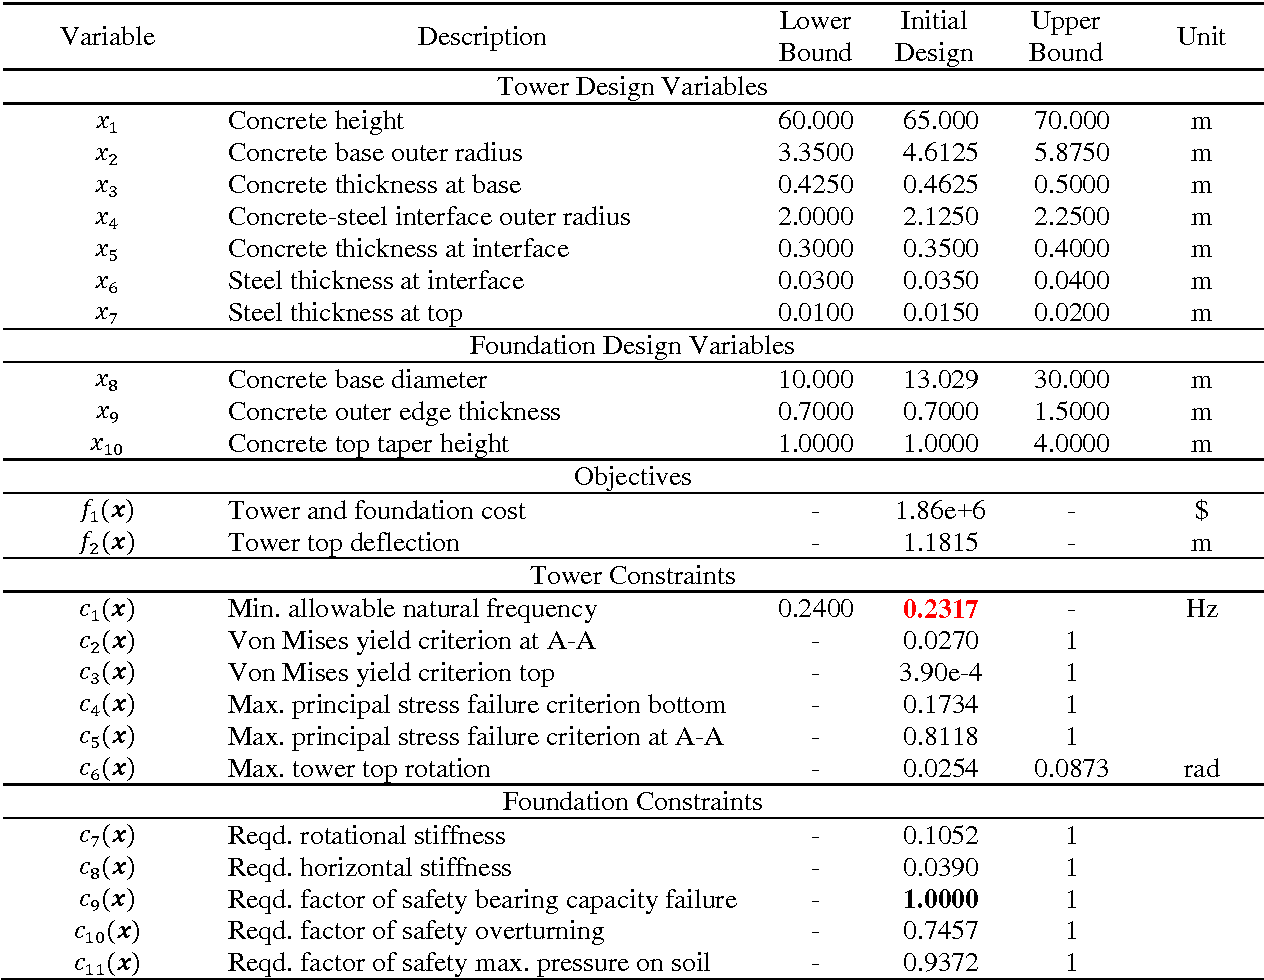 Table 1 From Multi Objective Structural Optimization Of Wind Turbine Tower And Foundation Systems Using Isight A Process Automation And Design Exploration Software Semantic Scholar